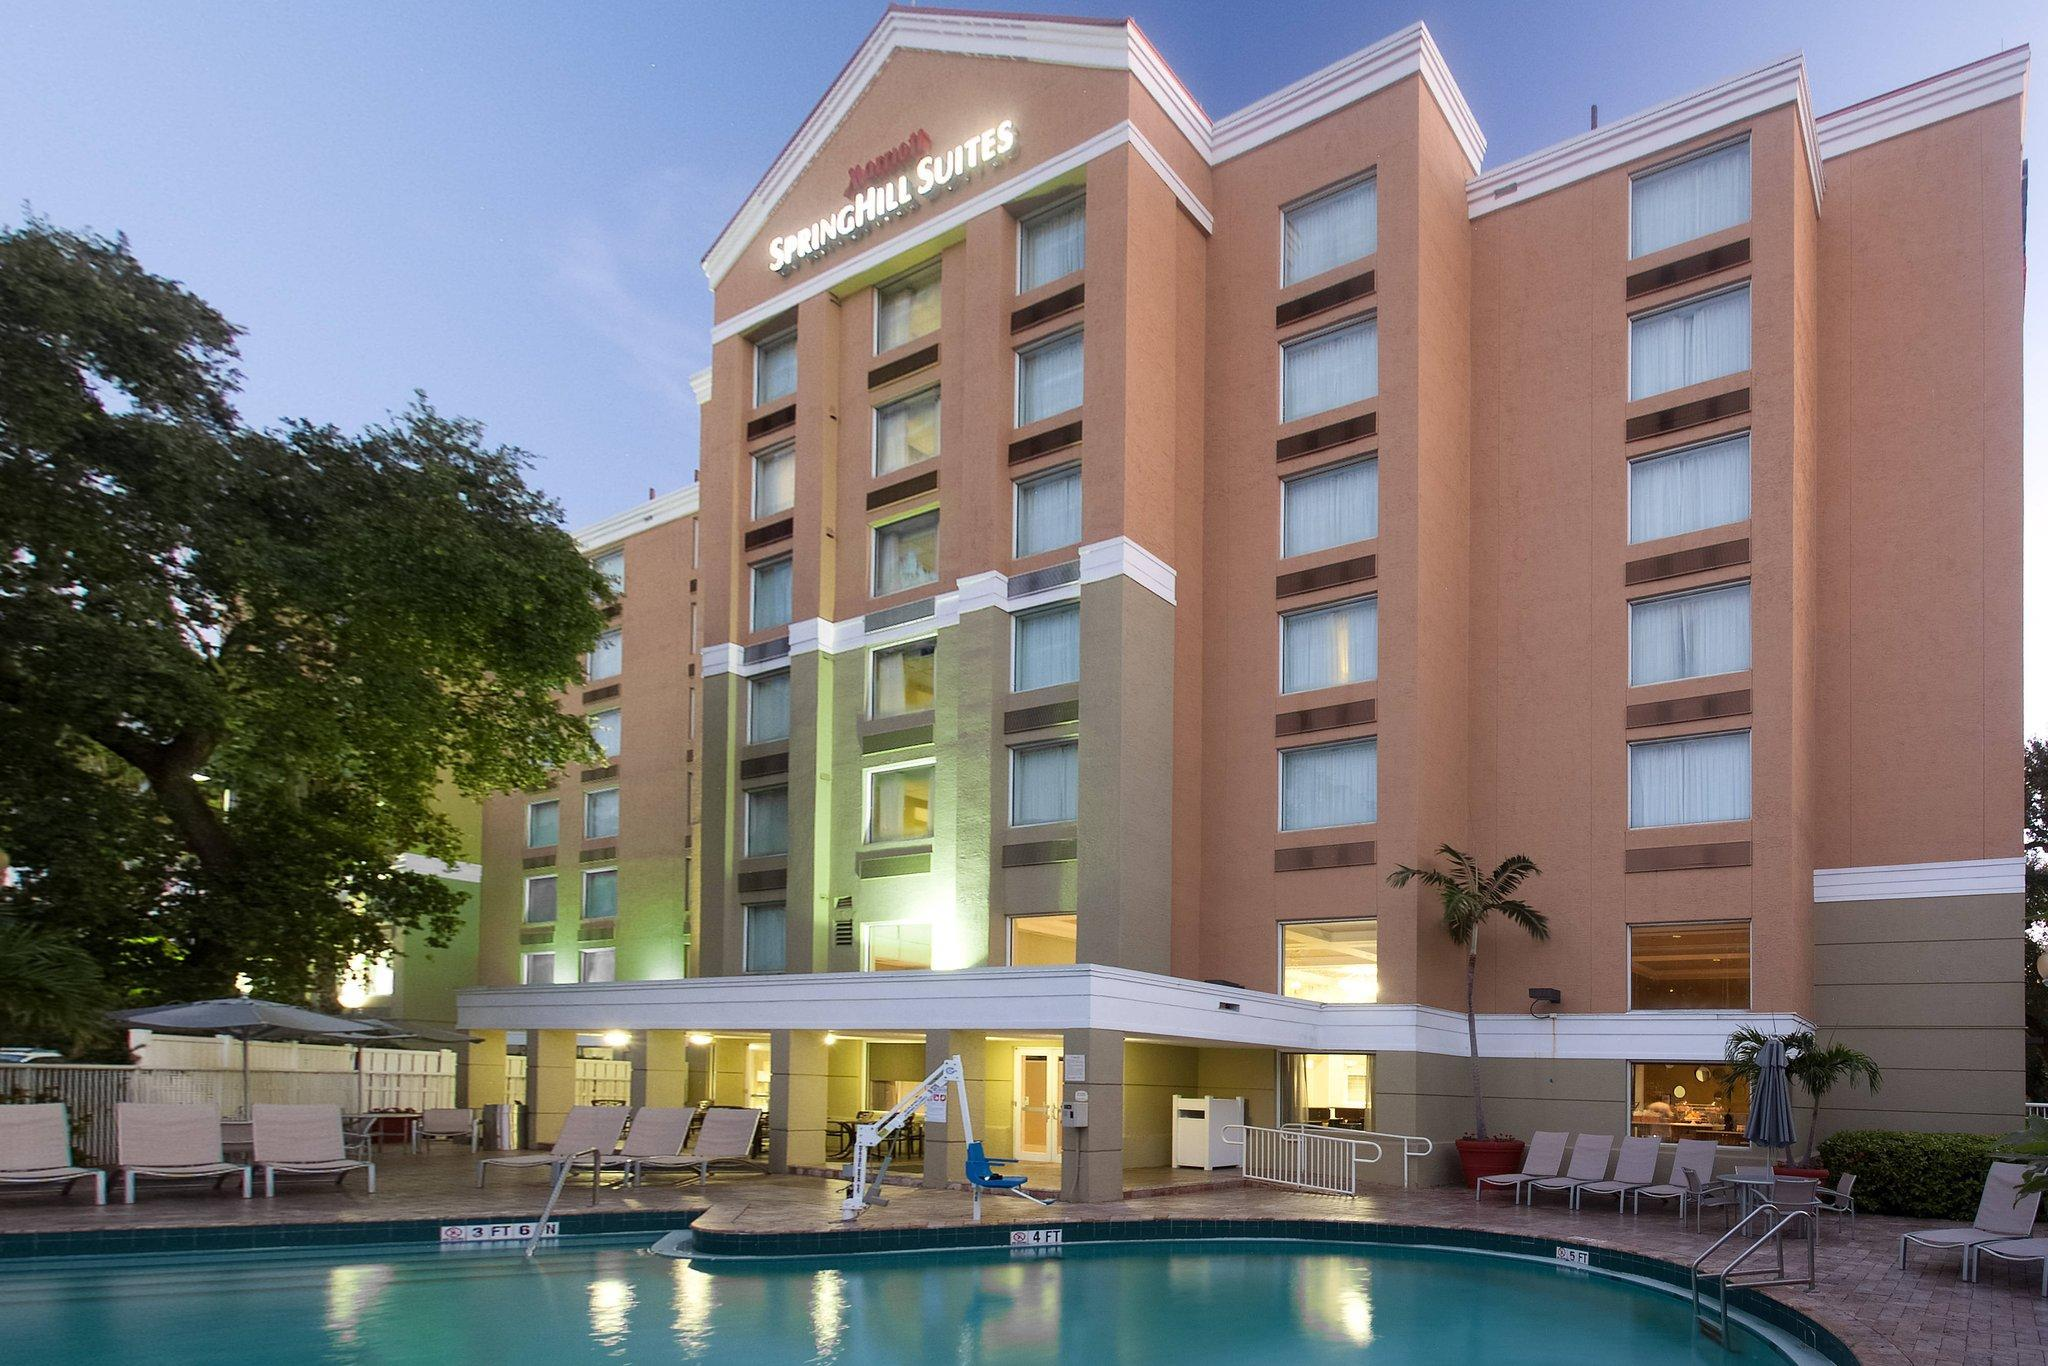 SpringHill Suites Fort Lauderdale Airport And Cruise Port